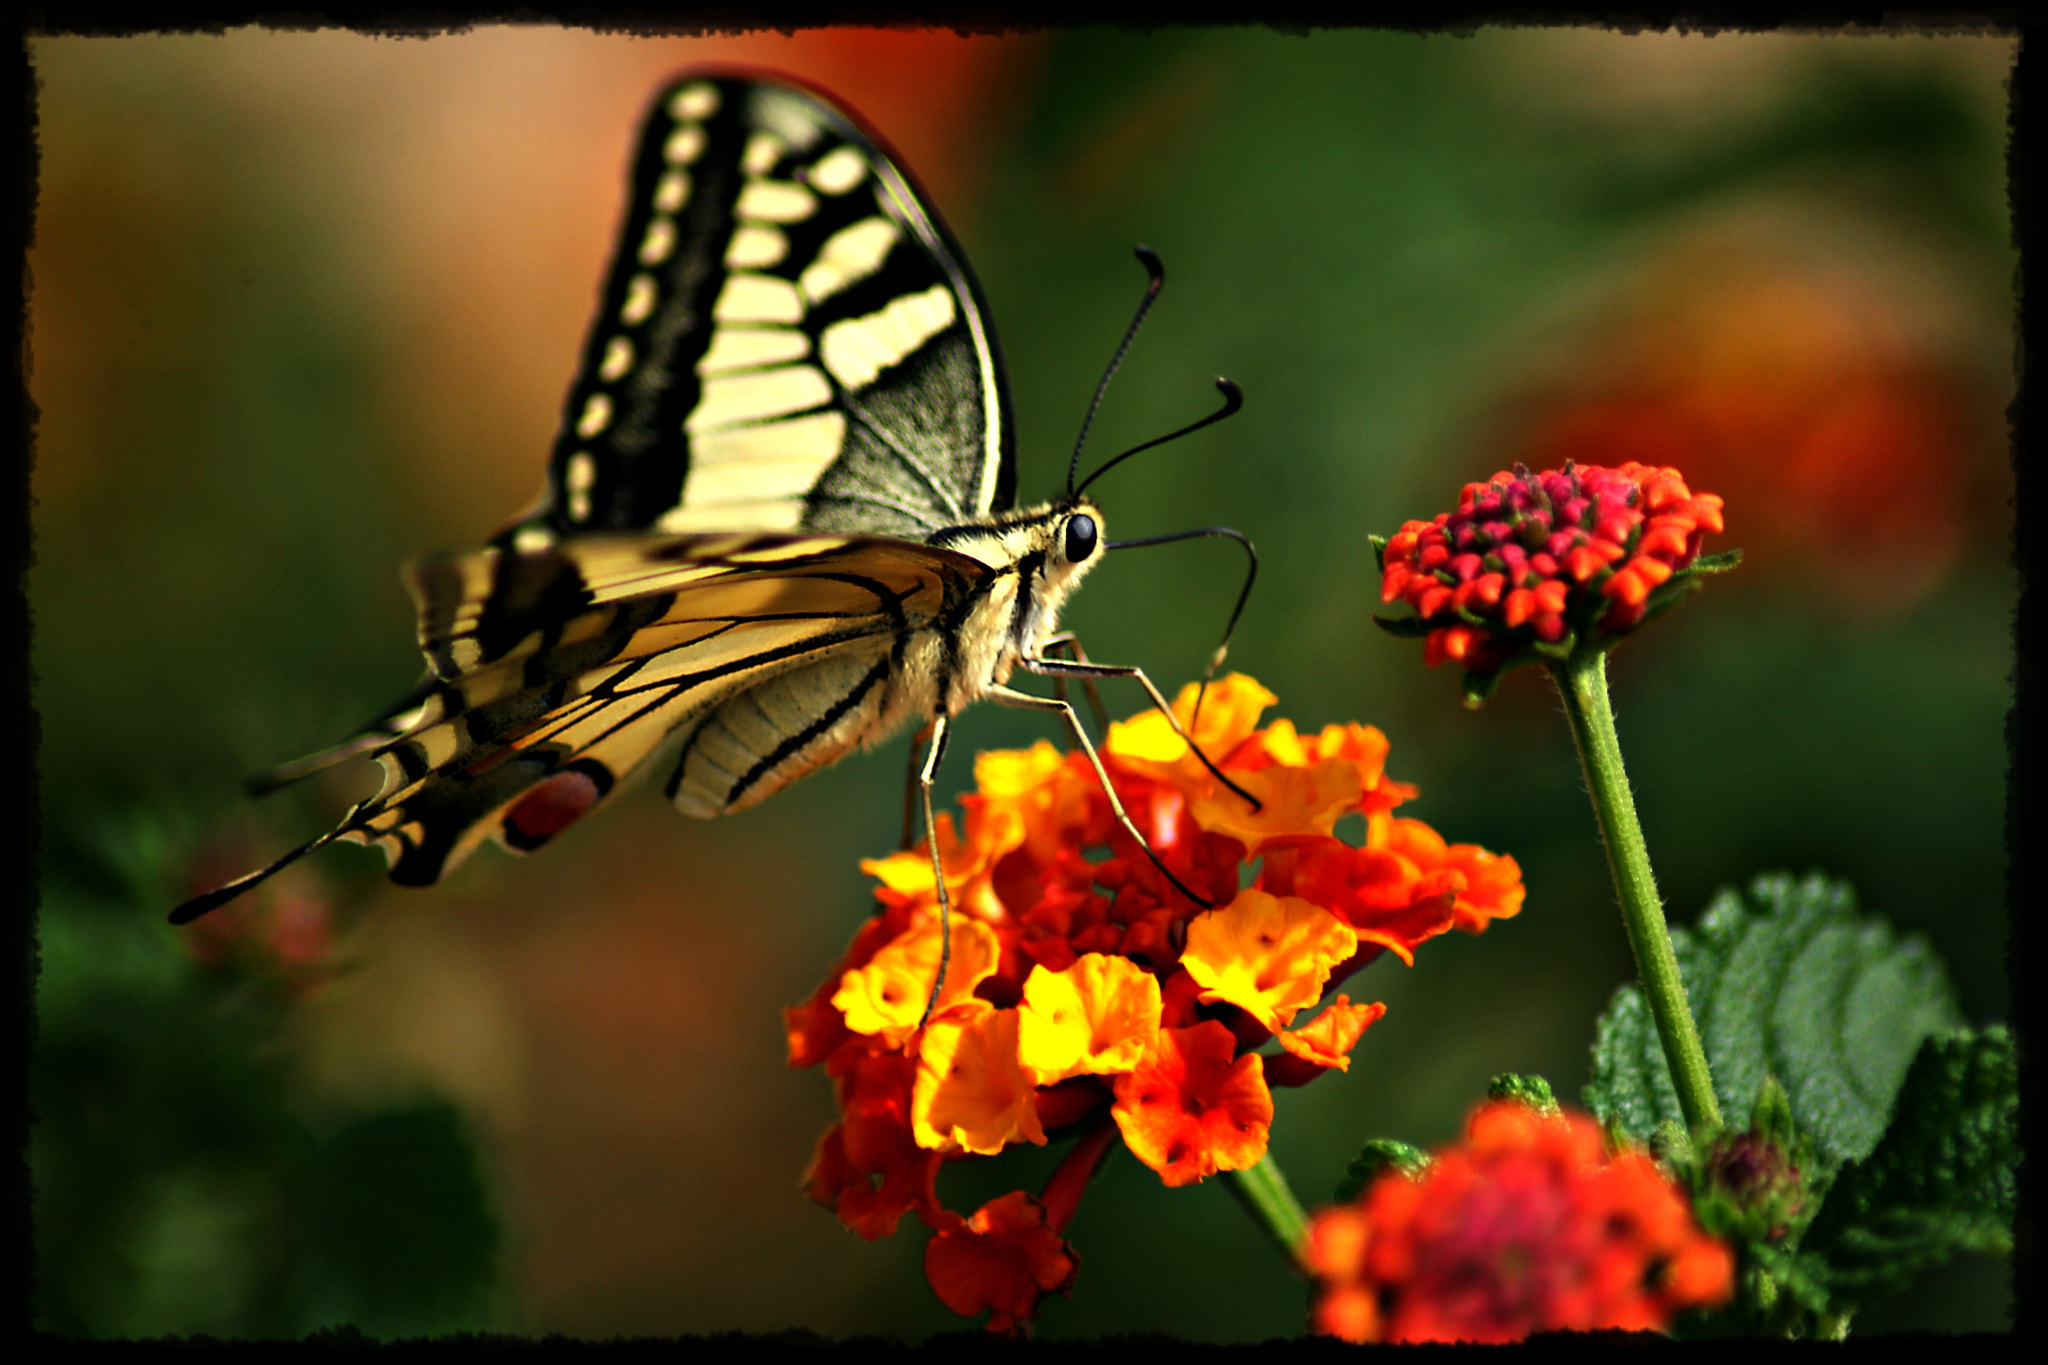 Photograph Mariposa by Jaime Vilches on 500px